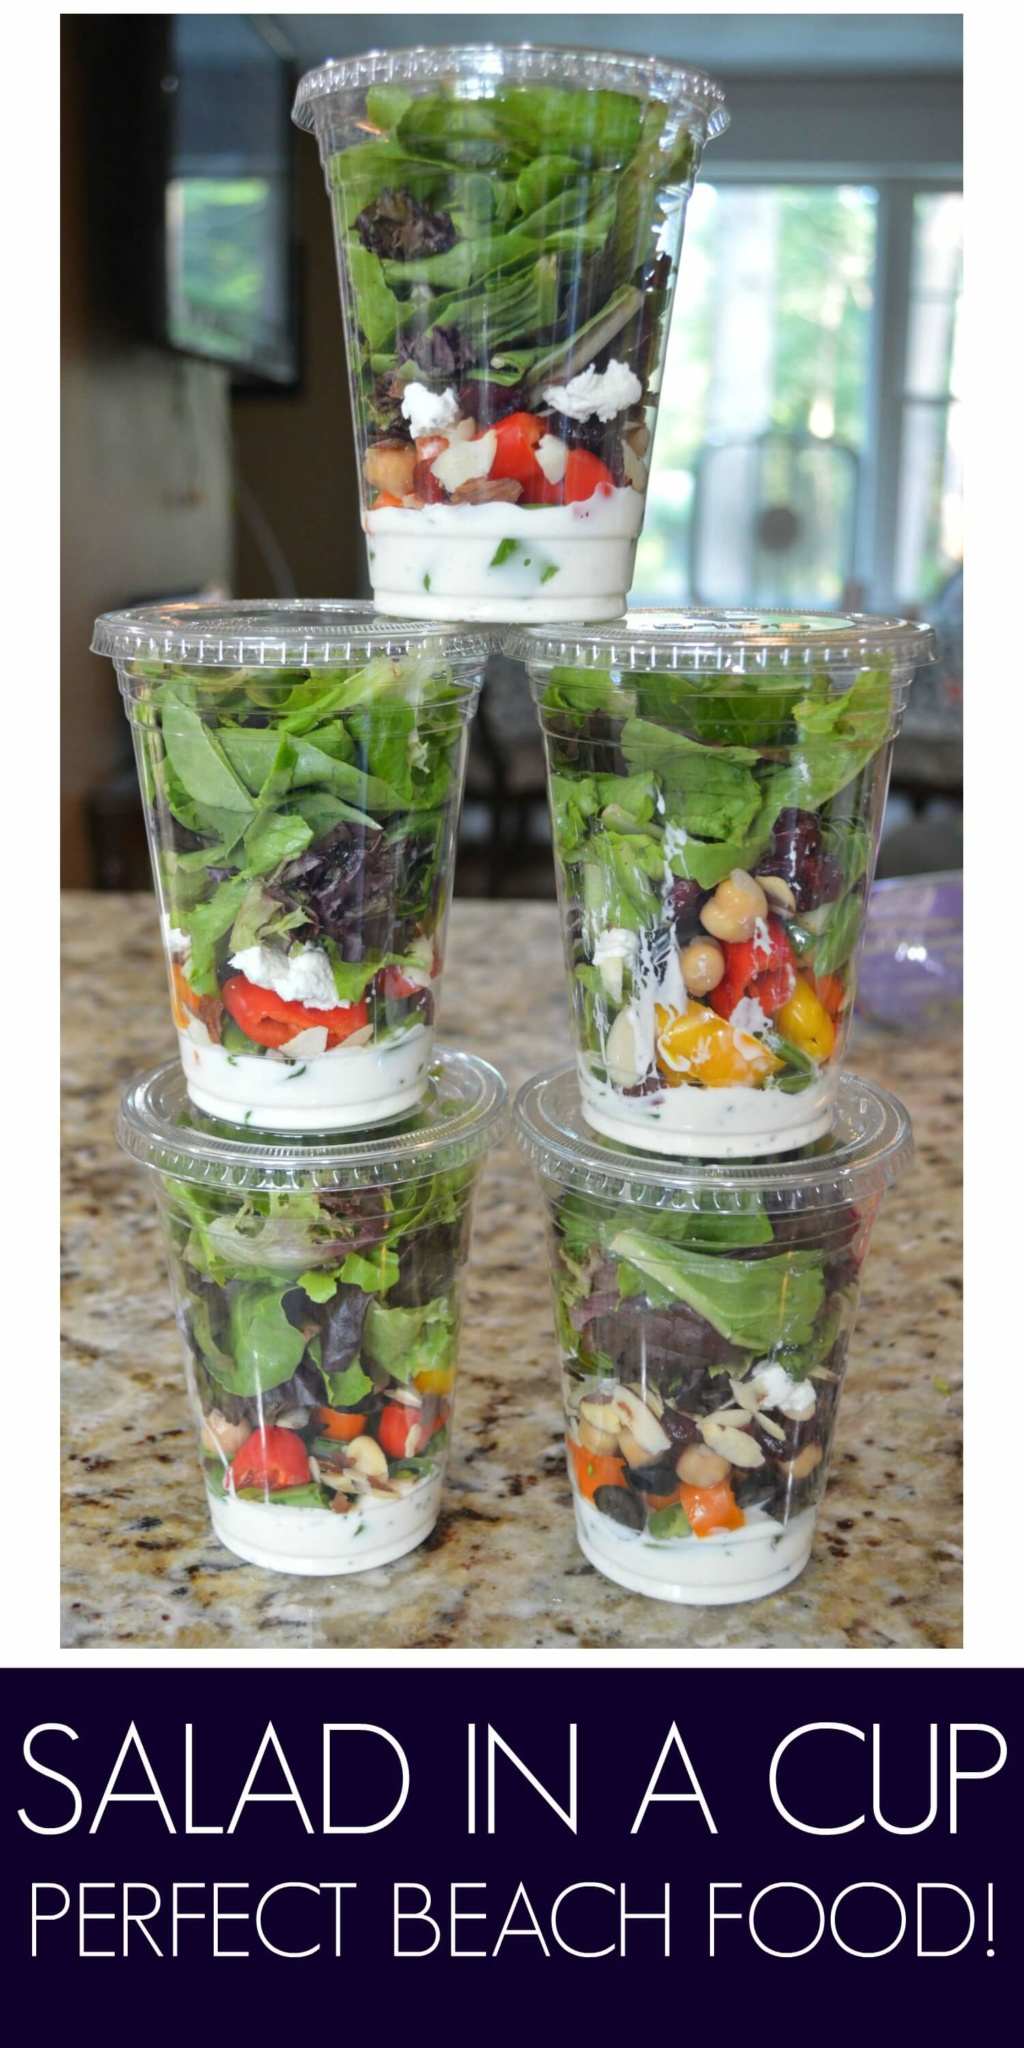 I Tried It – Salad in a Cup